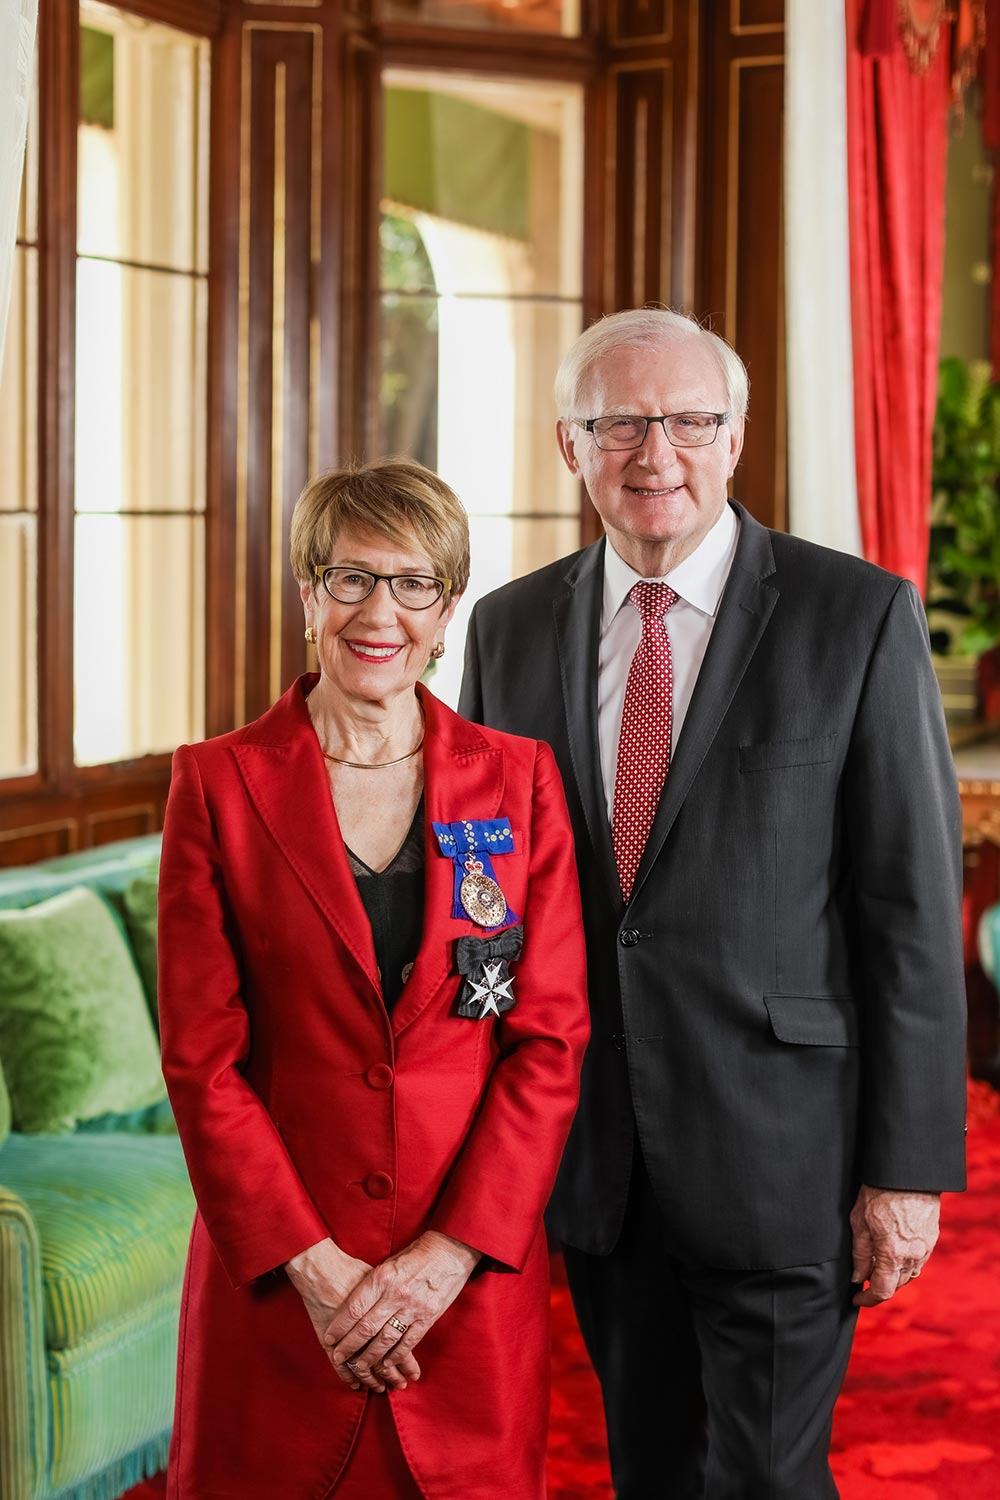 Her Excellency The Honourable Margaret Beazley AC QC, Governor of NSW and MR Dennis Wilson